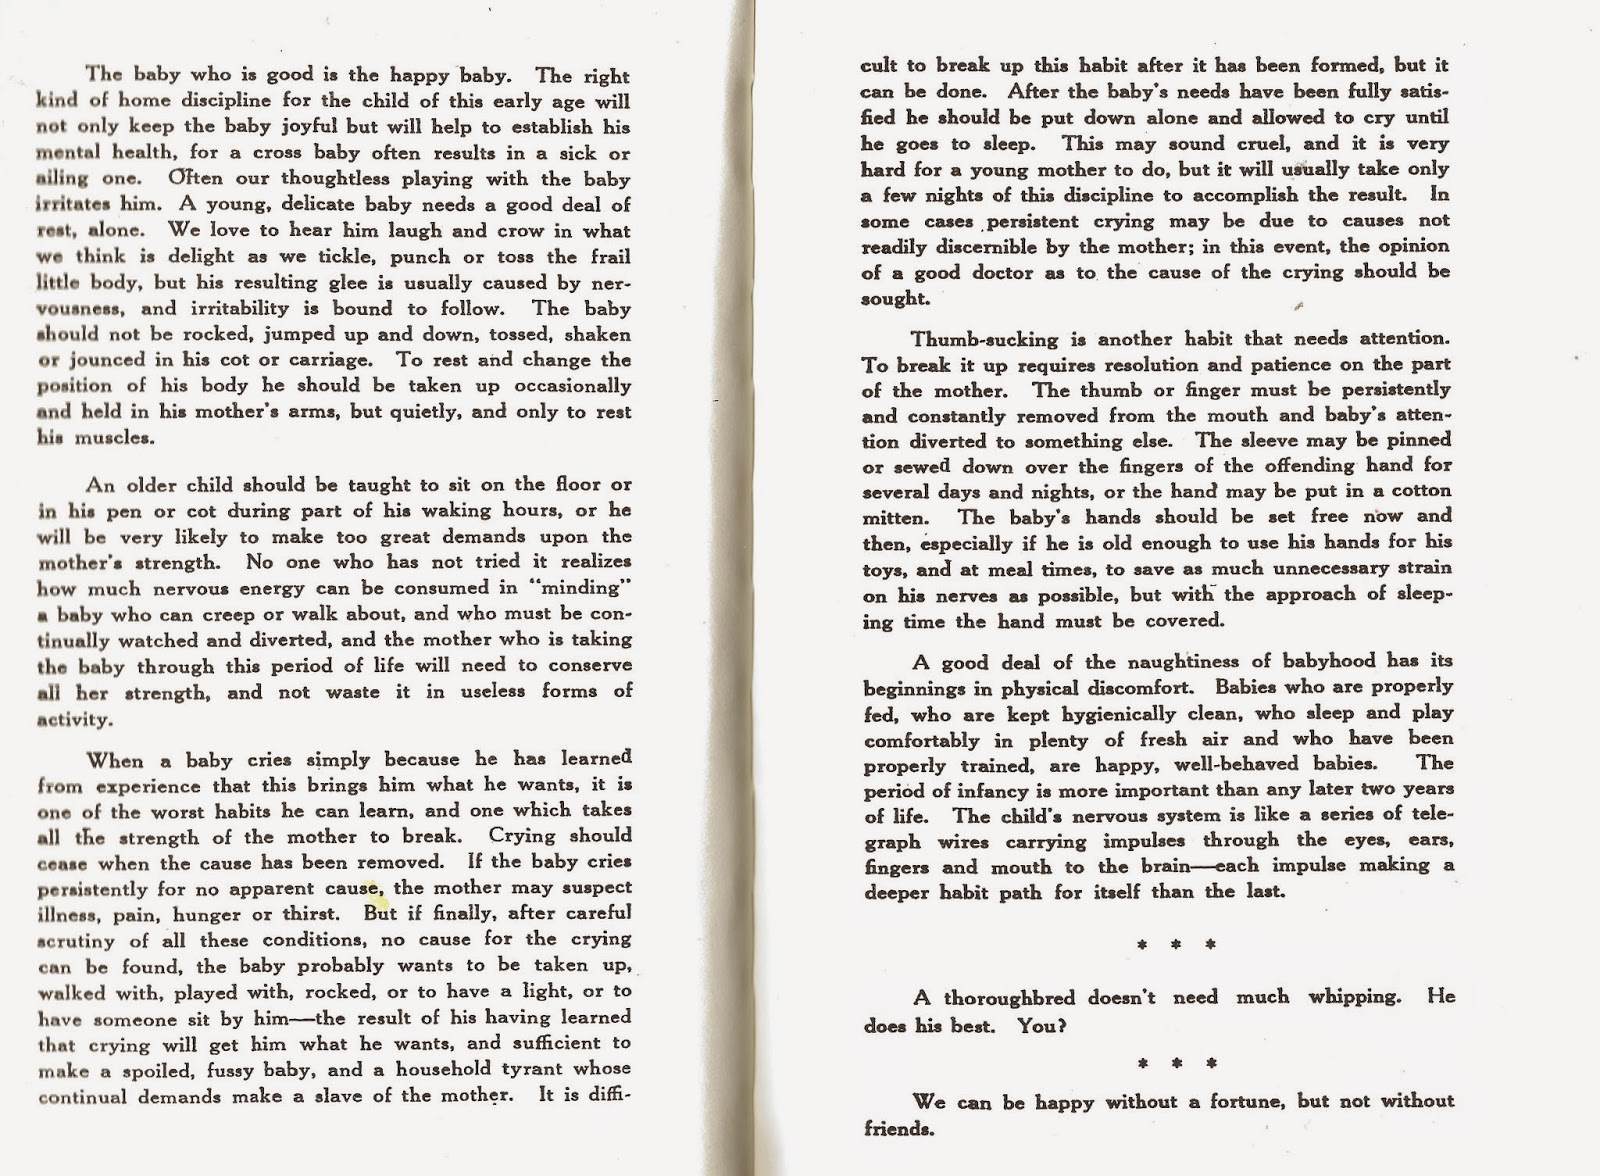 Here's Another Extract From The Previously Mentioned Book For Every Woman,  This Time From The Barbabydos: How To